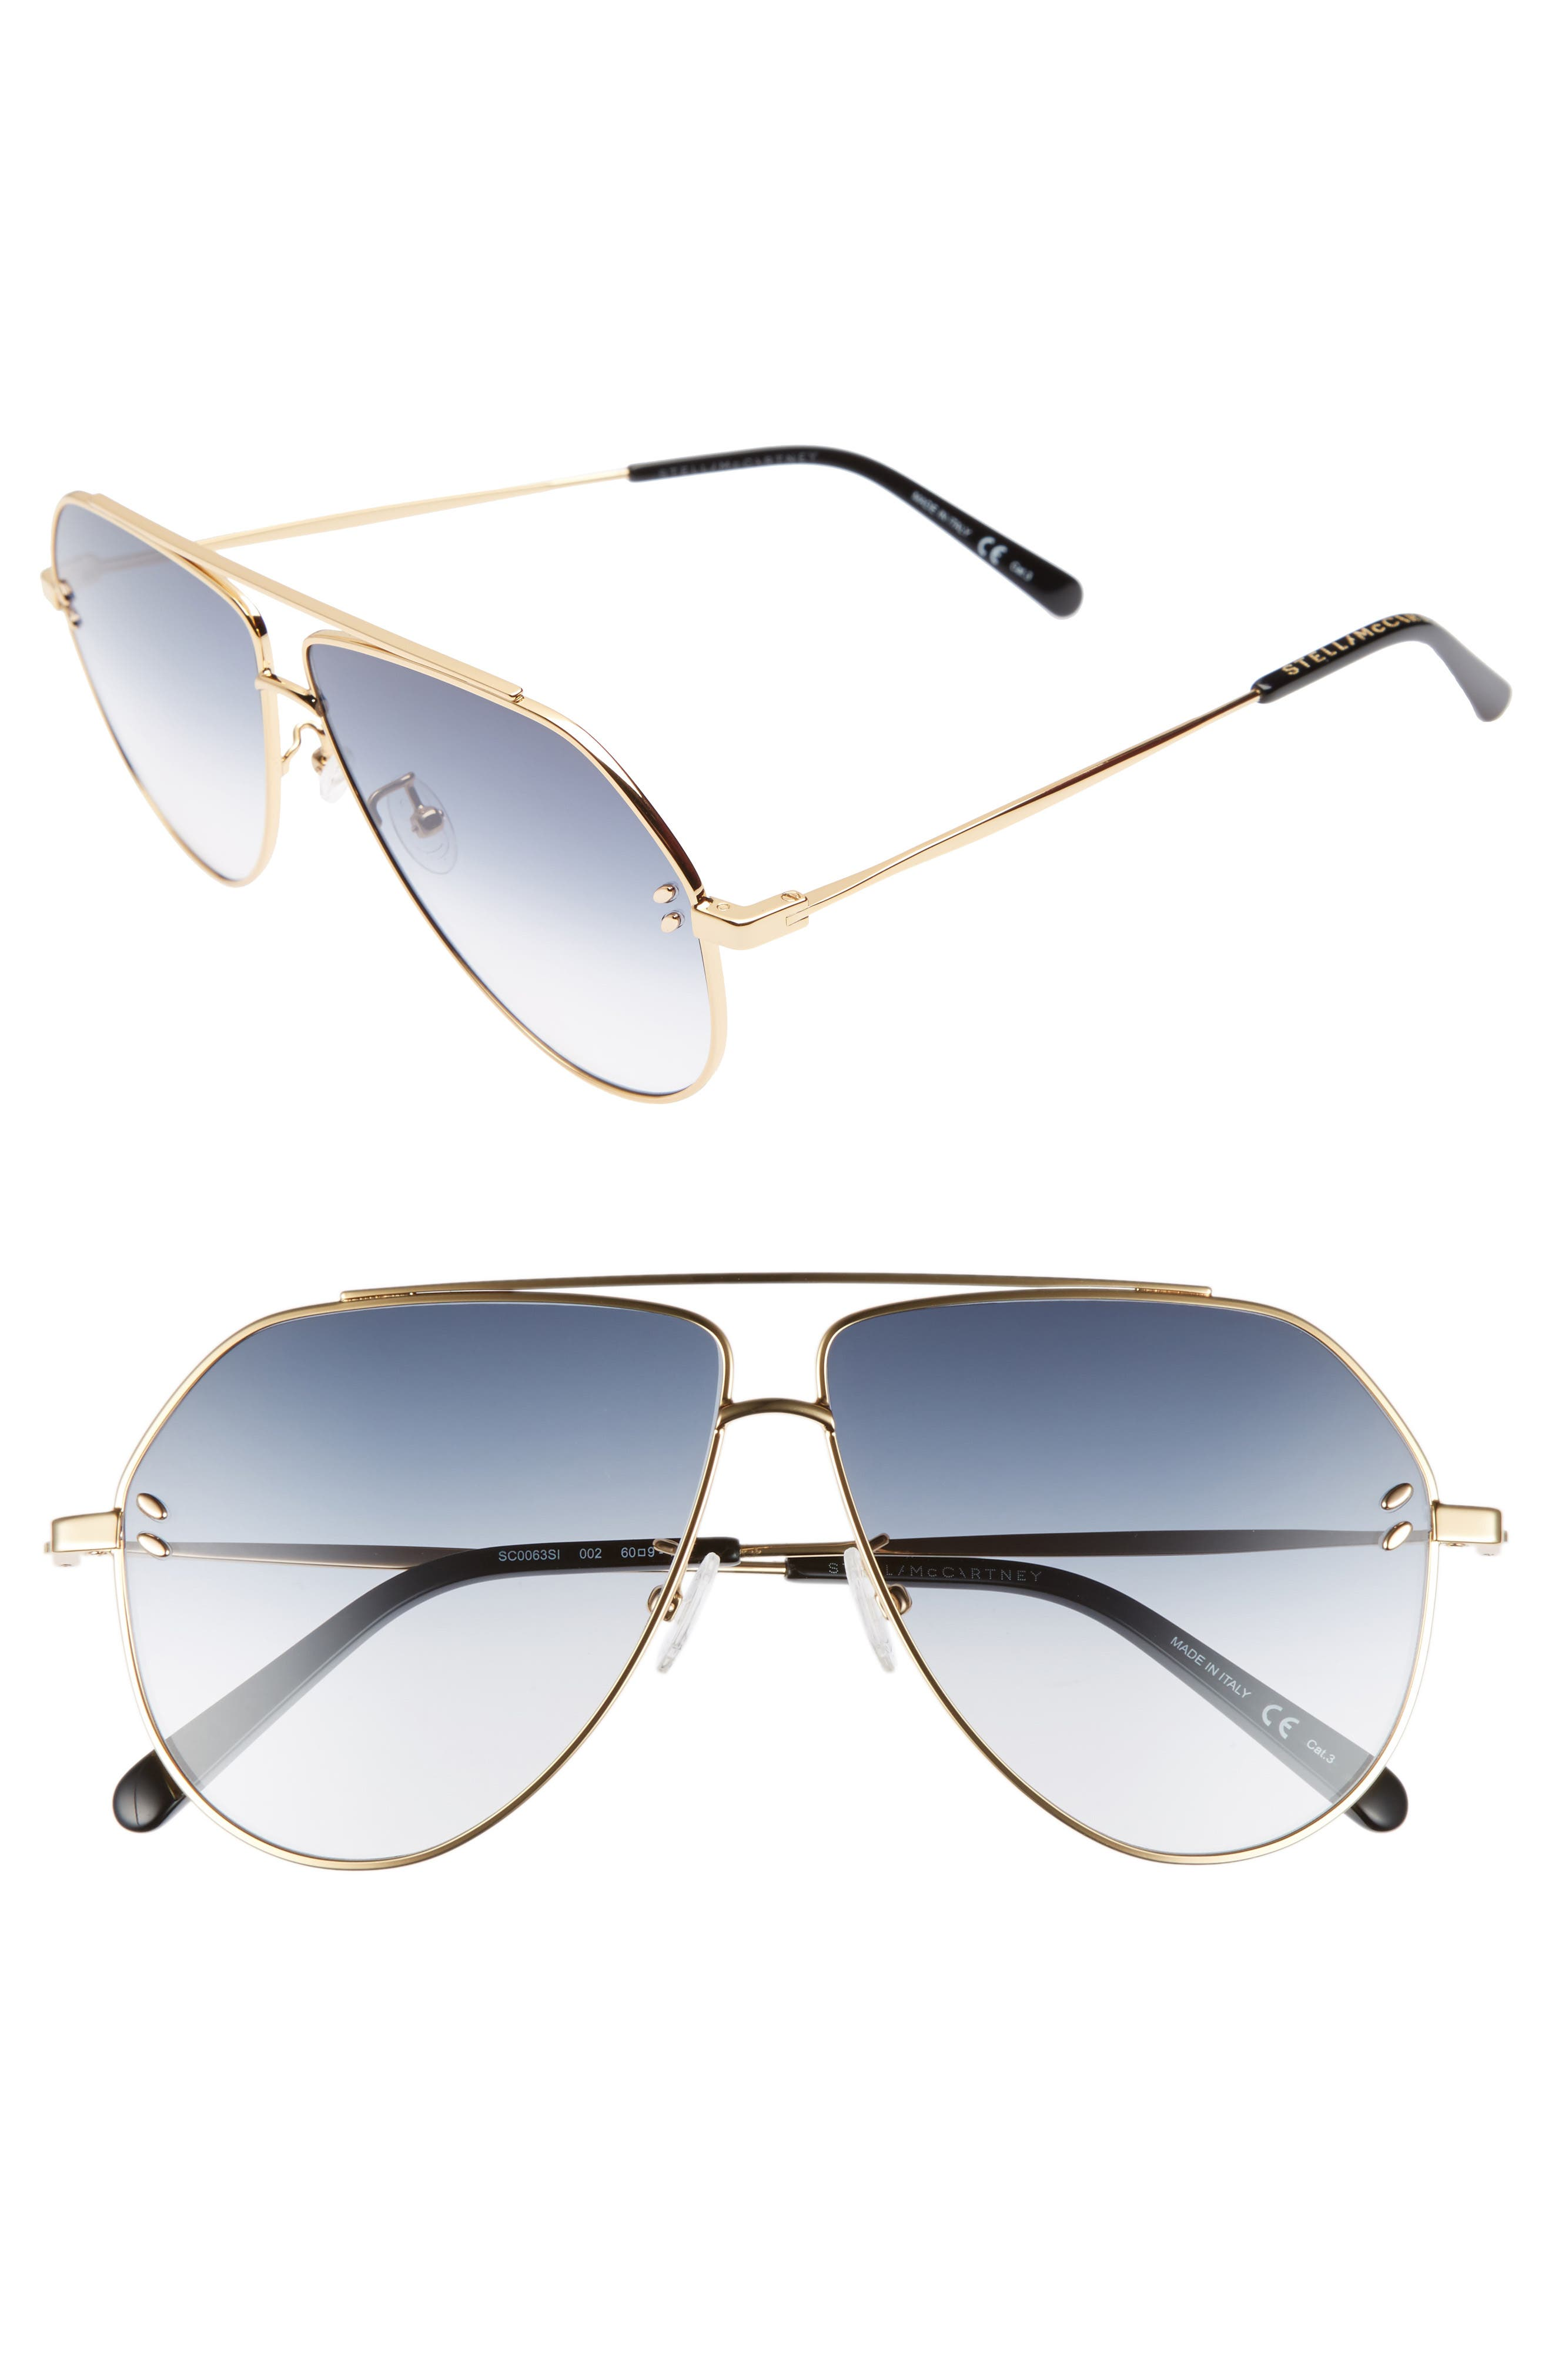 60MM AVIATOR SUNGLASSES - GOLD/ BLACK